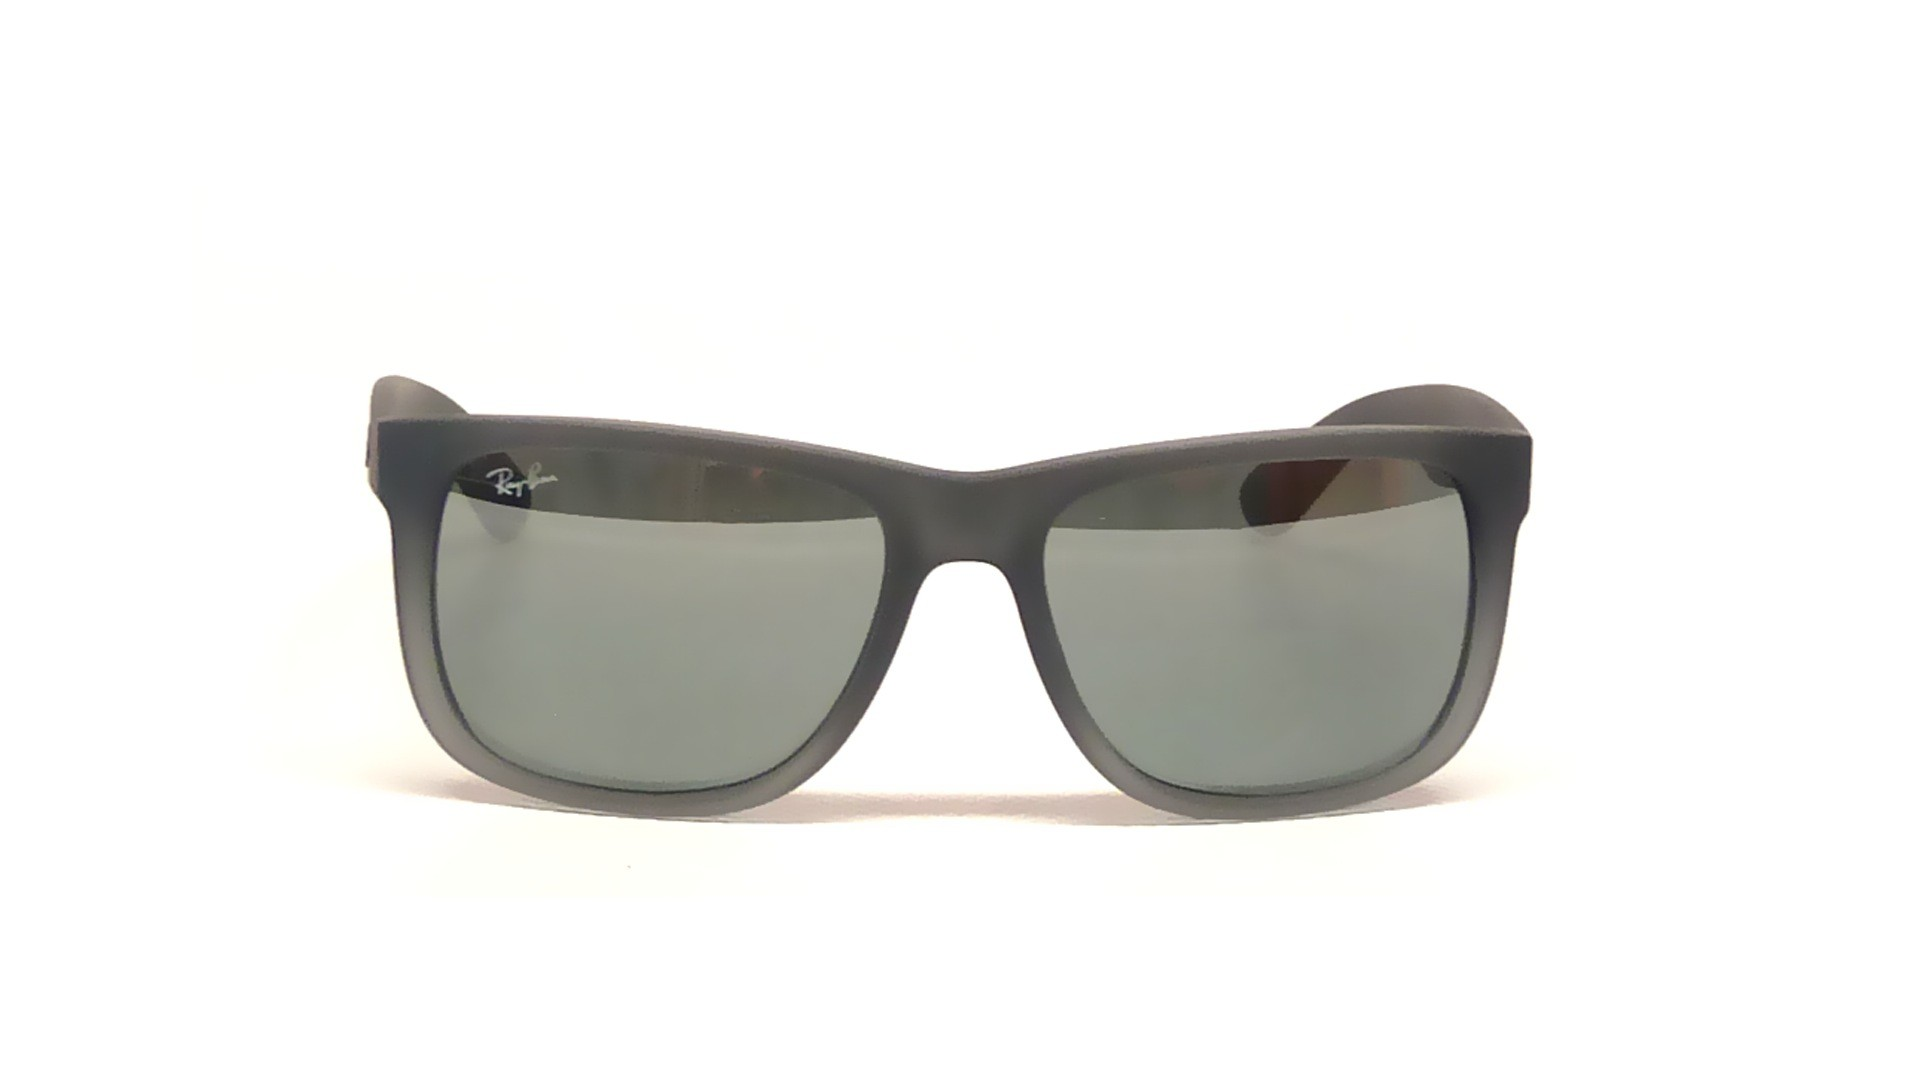 Ray-Ban Justin RB4165 852/88 55-16 6d6ACW